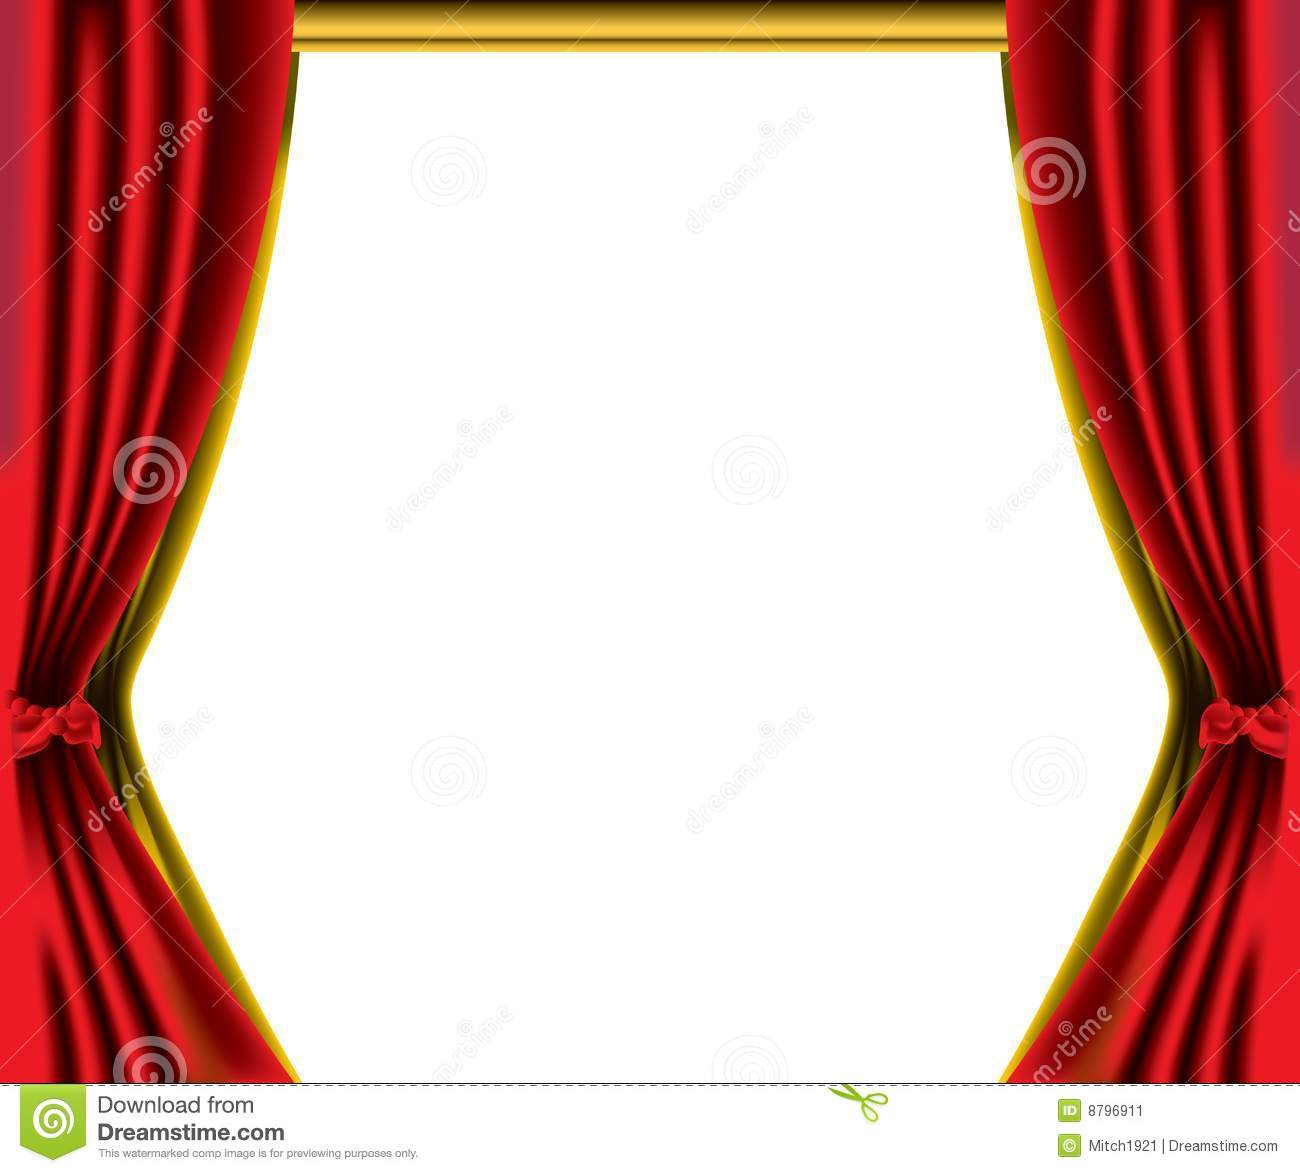 Curtain Fabric Red Curtain Border Stock Illustration. Image Of Cloth